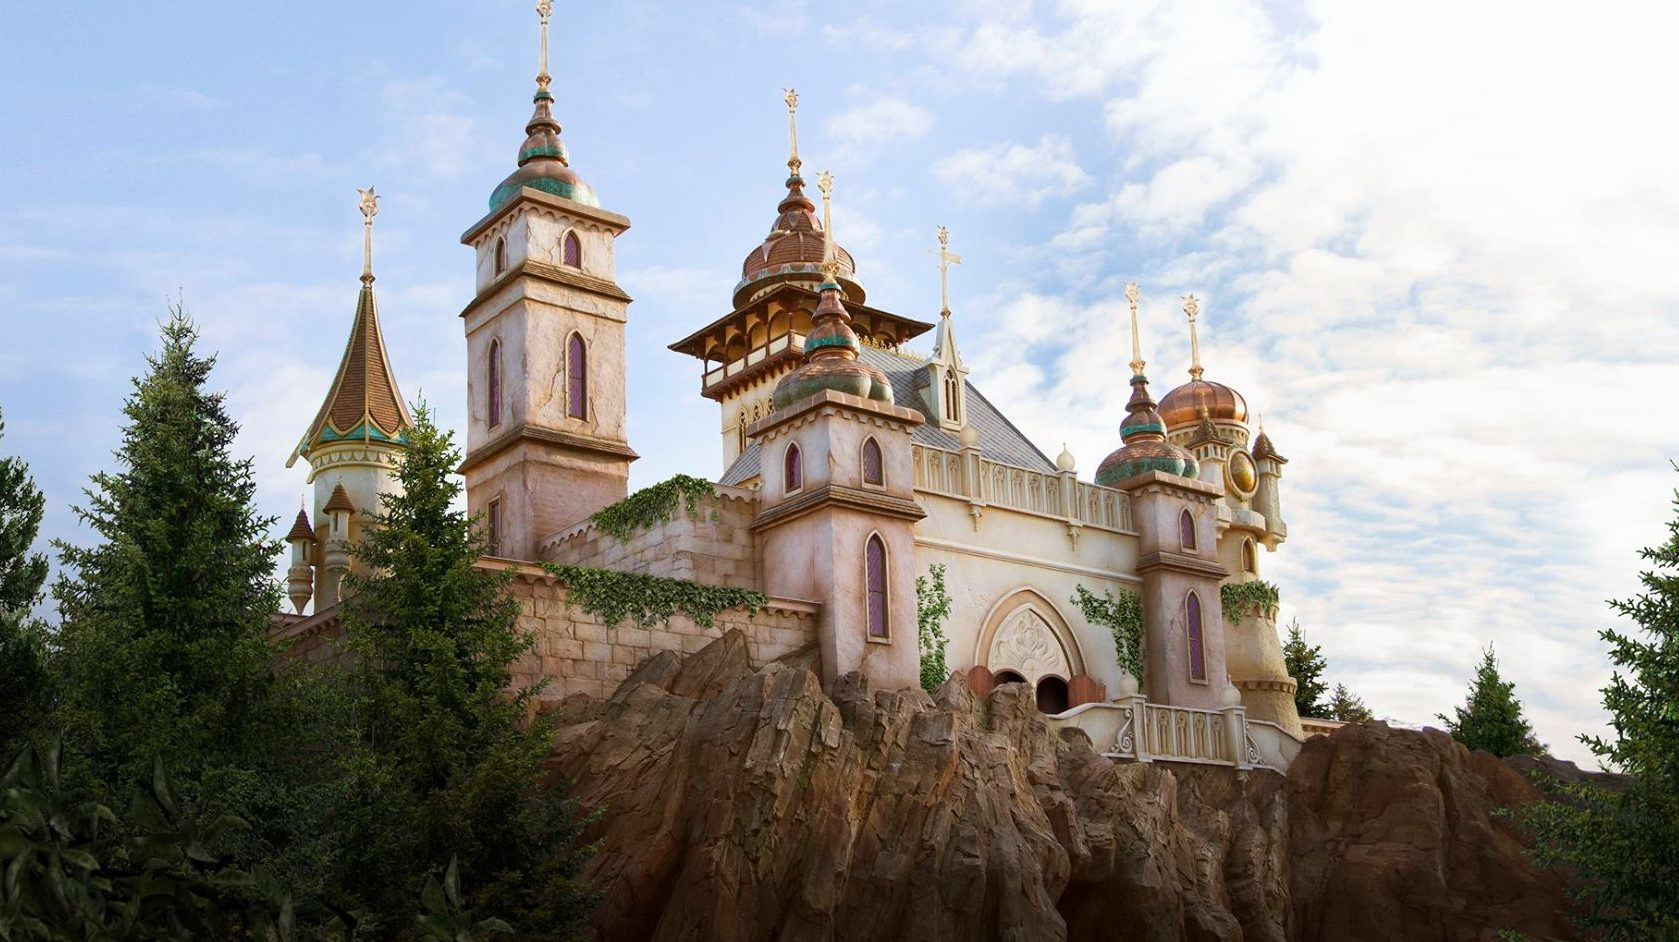 Exterior of Symbolica: Palace of Fantasy at Efteling